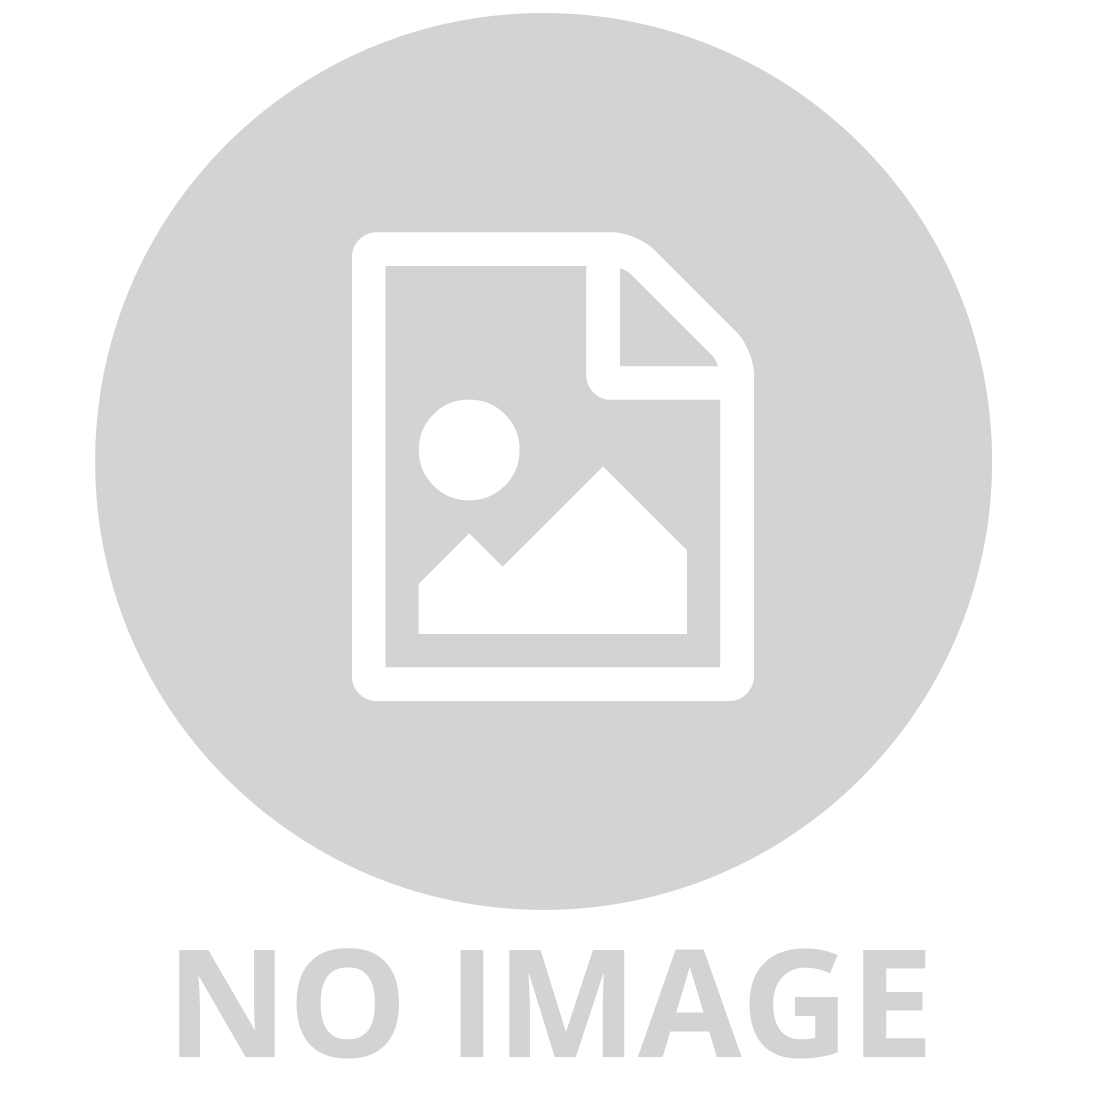 BEANIE BOOS REGULAR BUZBY YELLOW BEE